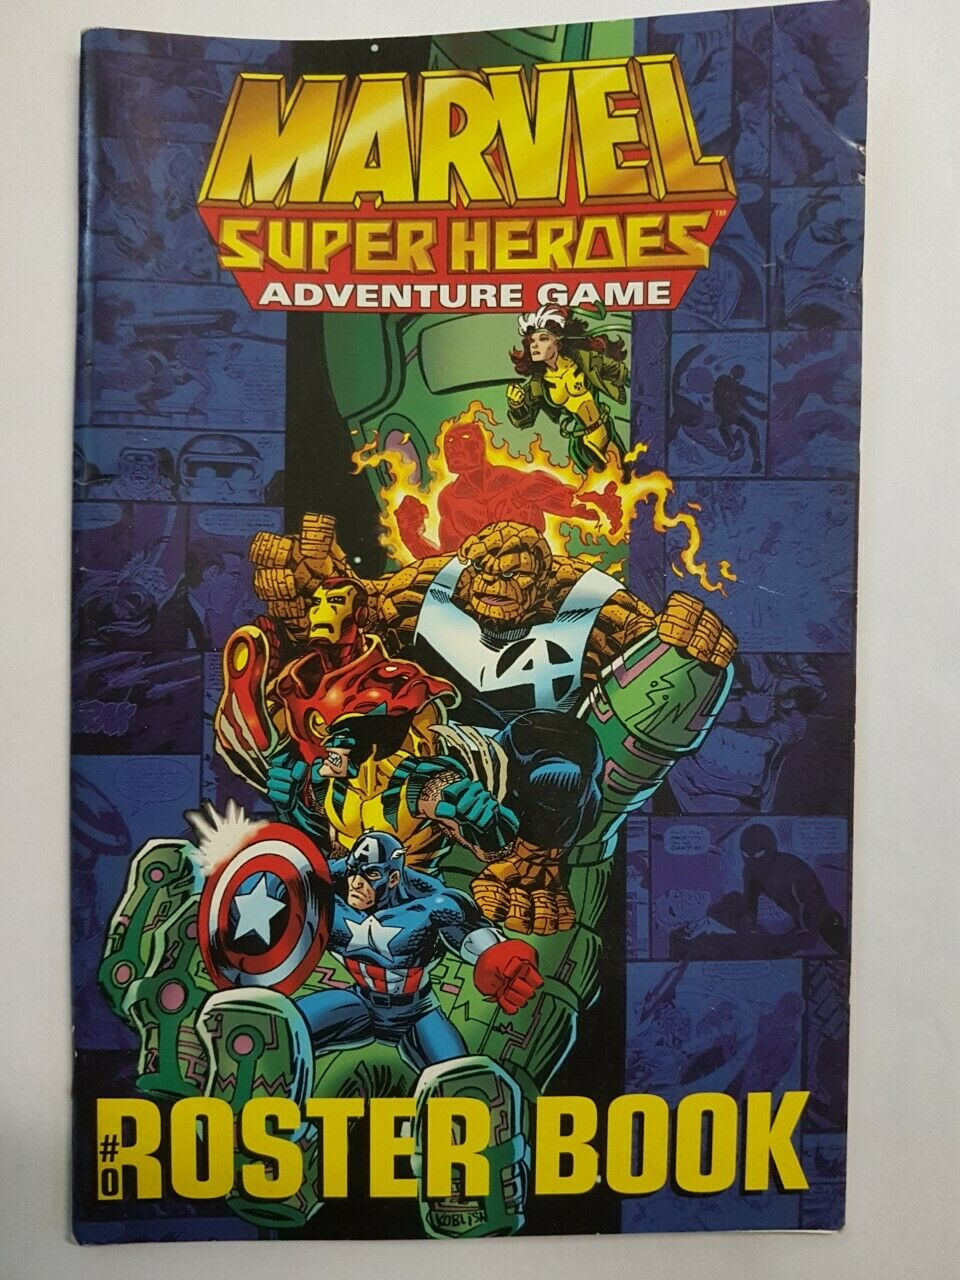 ROSTER BOOK - MARVEL SUPER HEROES ADVENTURE GAME - (SOFTCOVER)